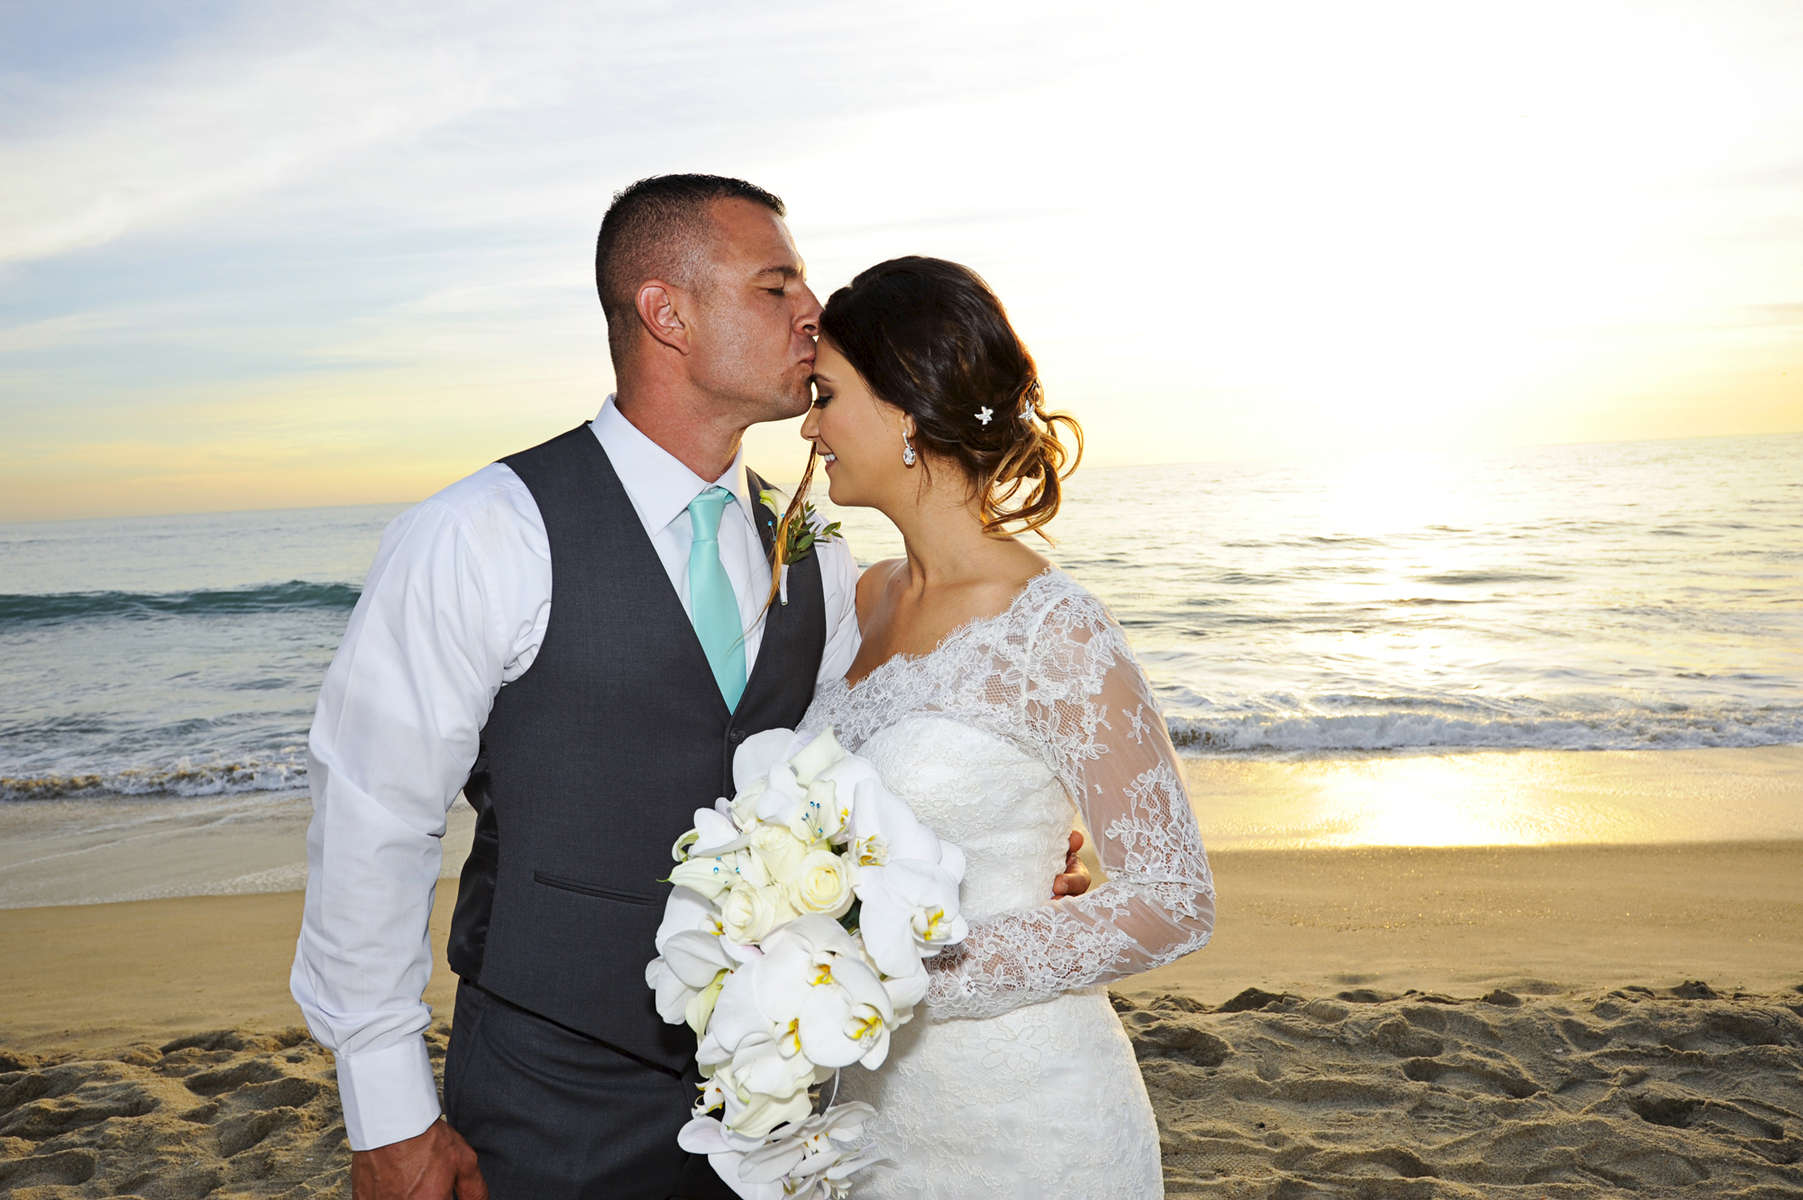 Christopher John Parese and Lindsay Michelle Lopez became husband and wife on a Southern California beach in Carlsbad, Calif., on Saturday, October 24, 2015 at the Beach Terrace Inn supported by their children, family, and friends. The bride and groom look forward to {quote}spending our lives together, raising our children, and making more happy memories.{quote} (Photo by: Meagan Reidinger © 2015)